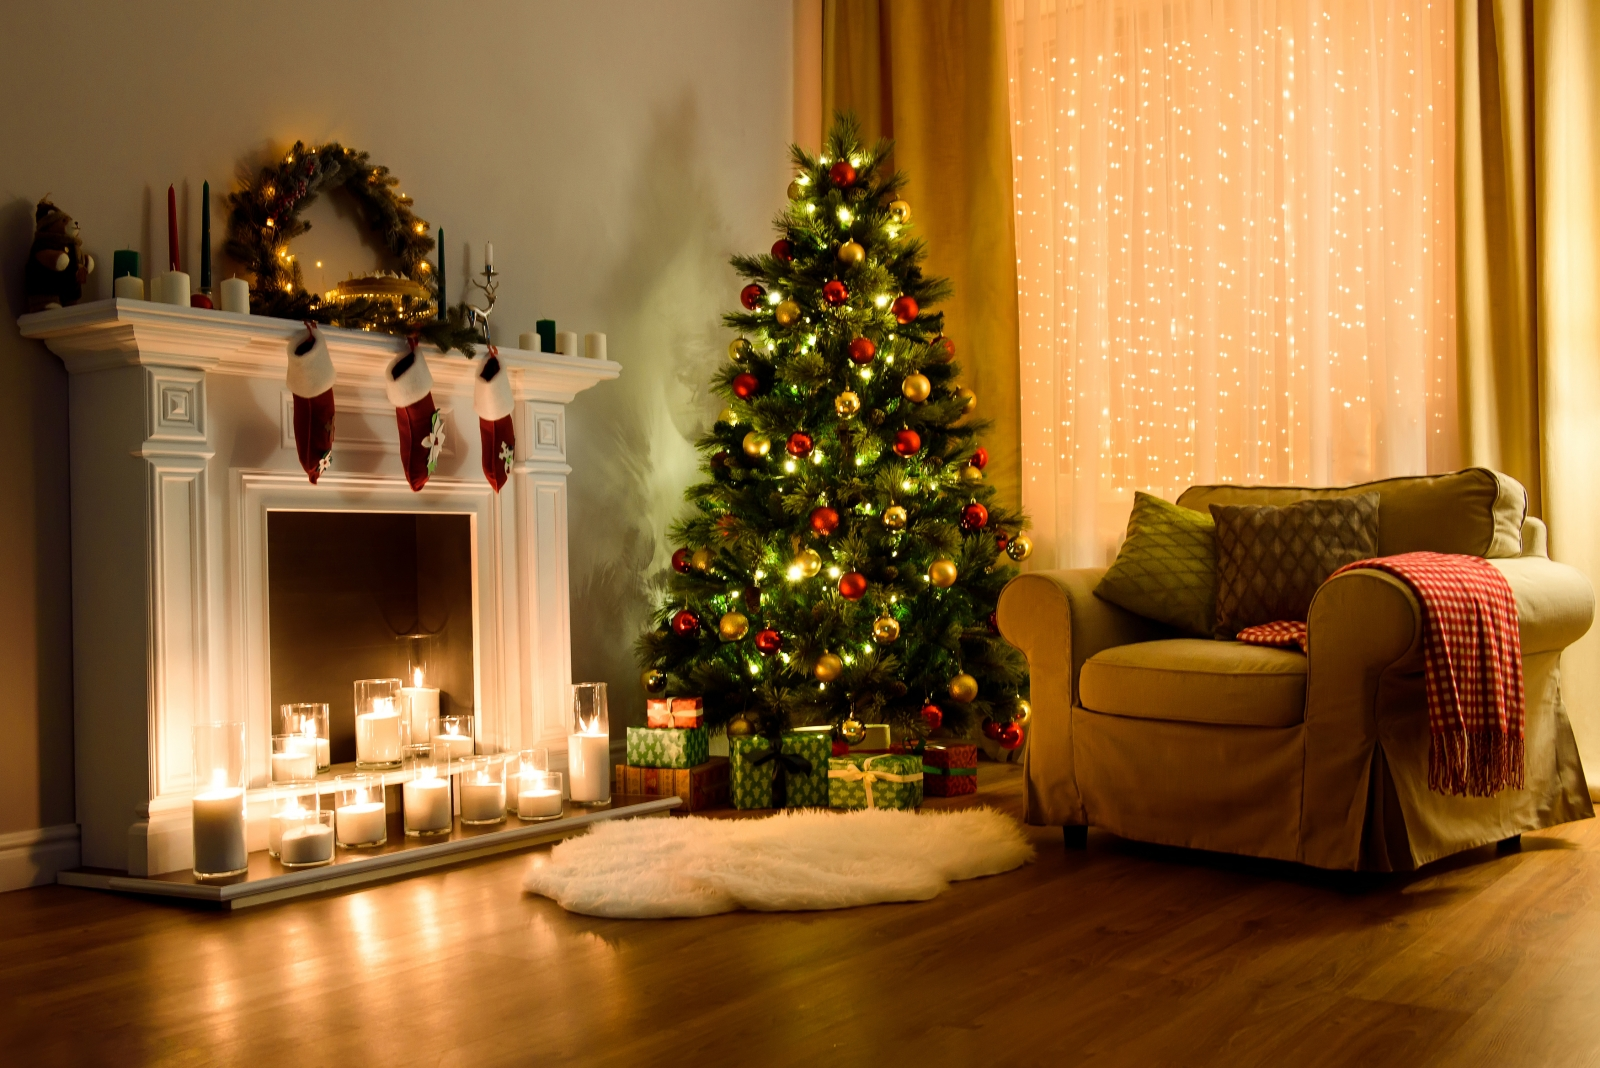 Where To Put Christmas Tree In Small Apartment